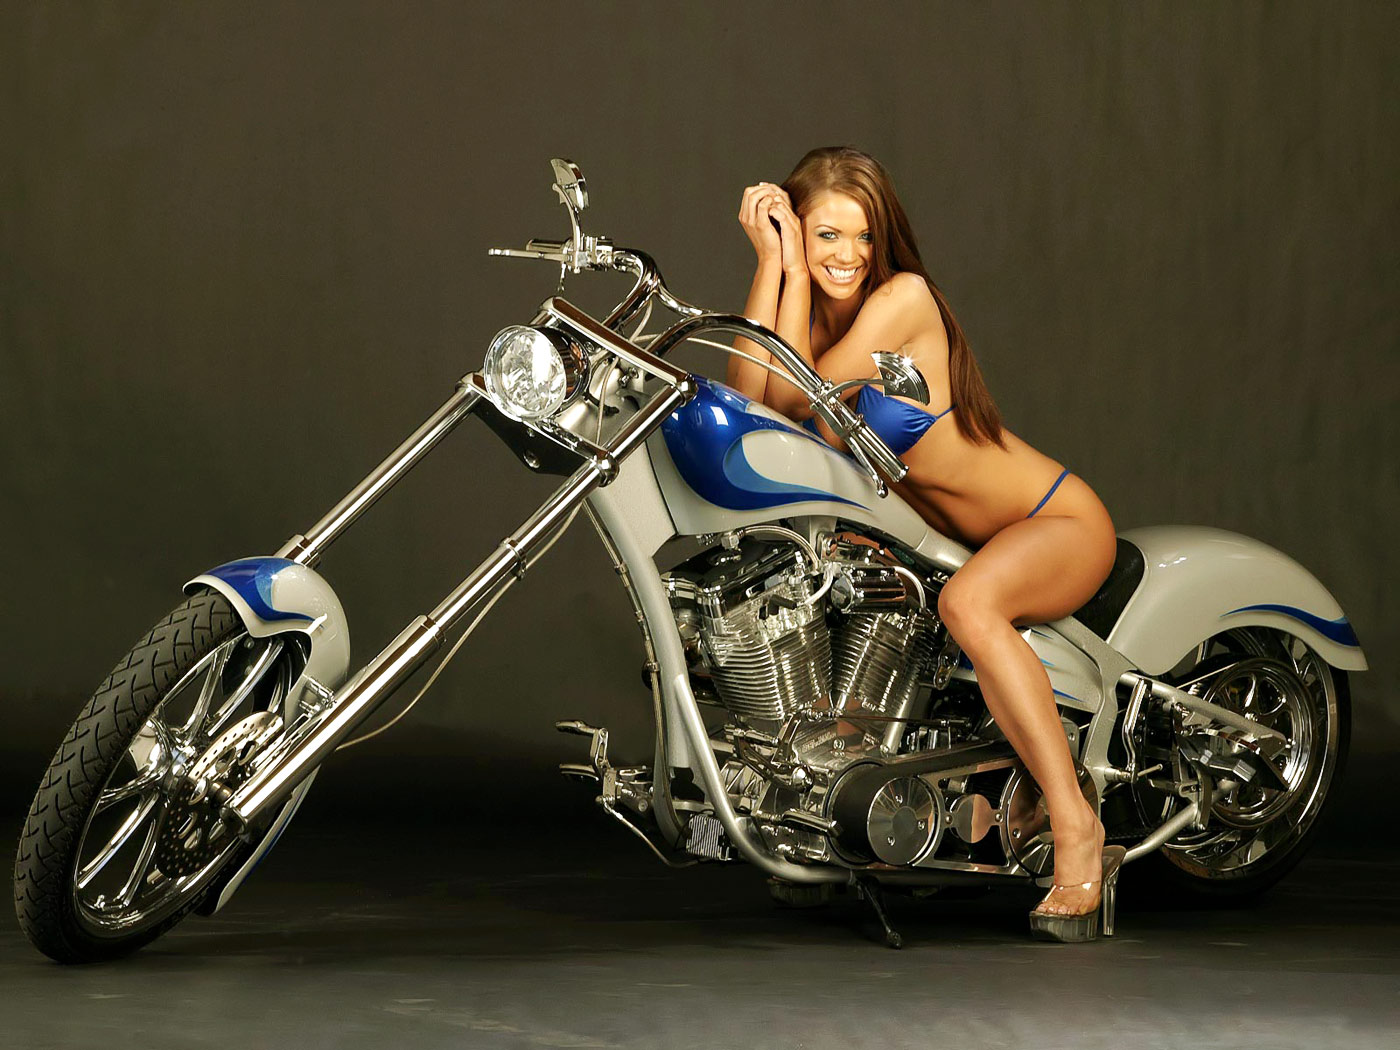 Girls On Harley-Davidson Motorcycles 1400 x 1050 · 261 kB · jpeg